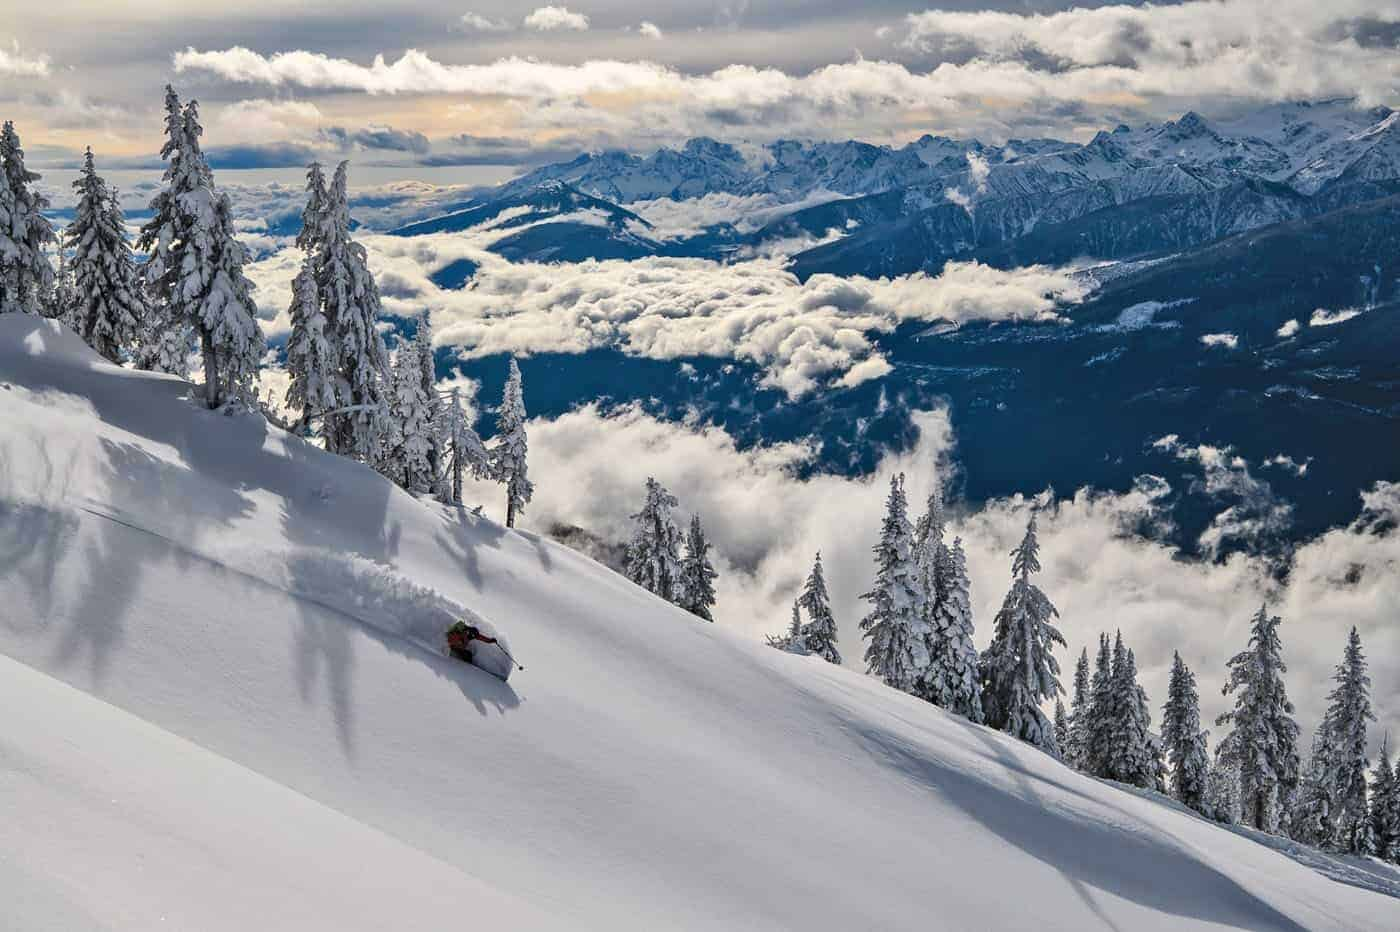 Canada has some of the best ski resports on the continent